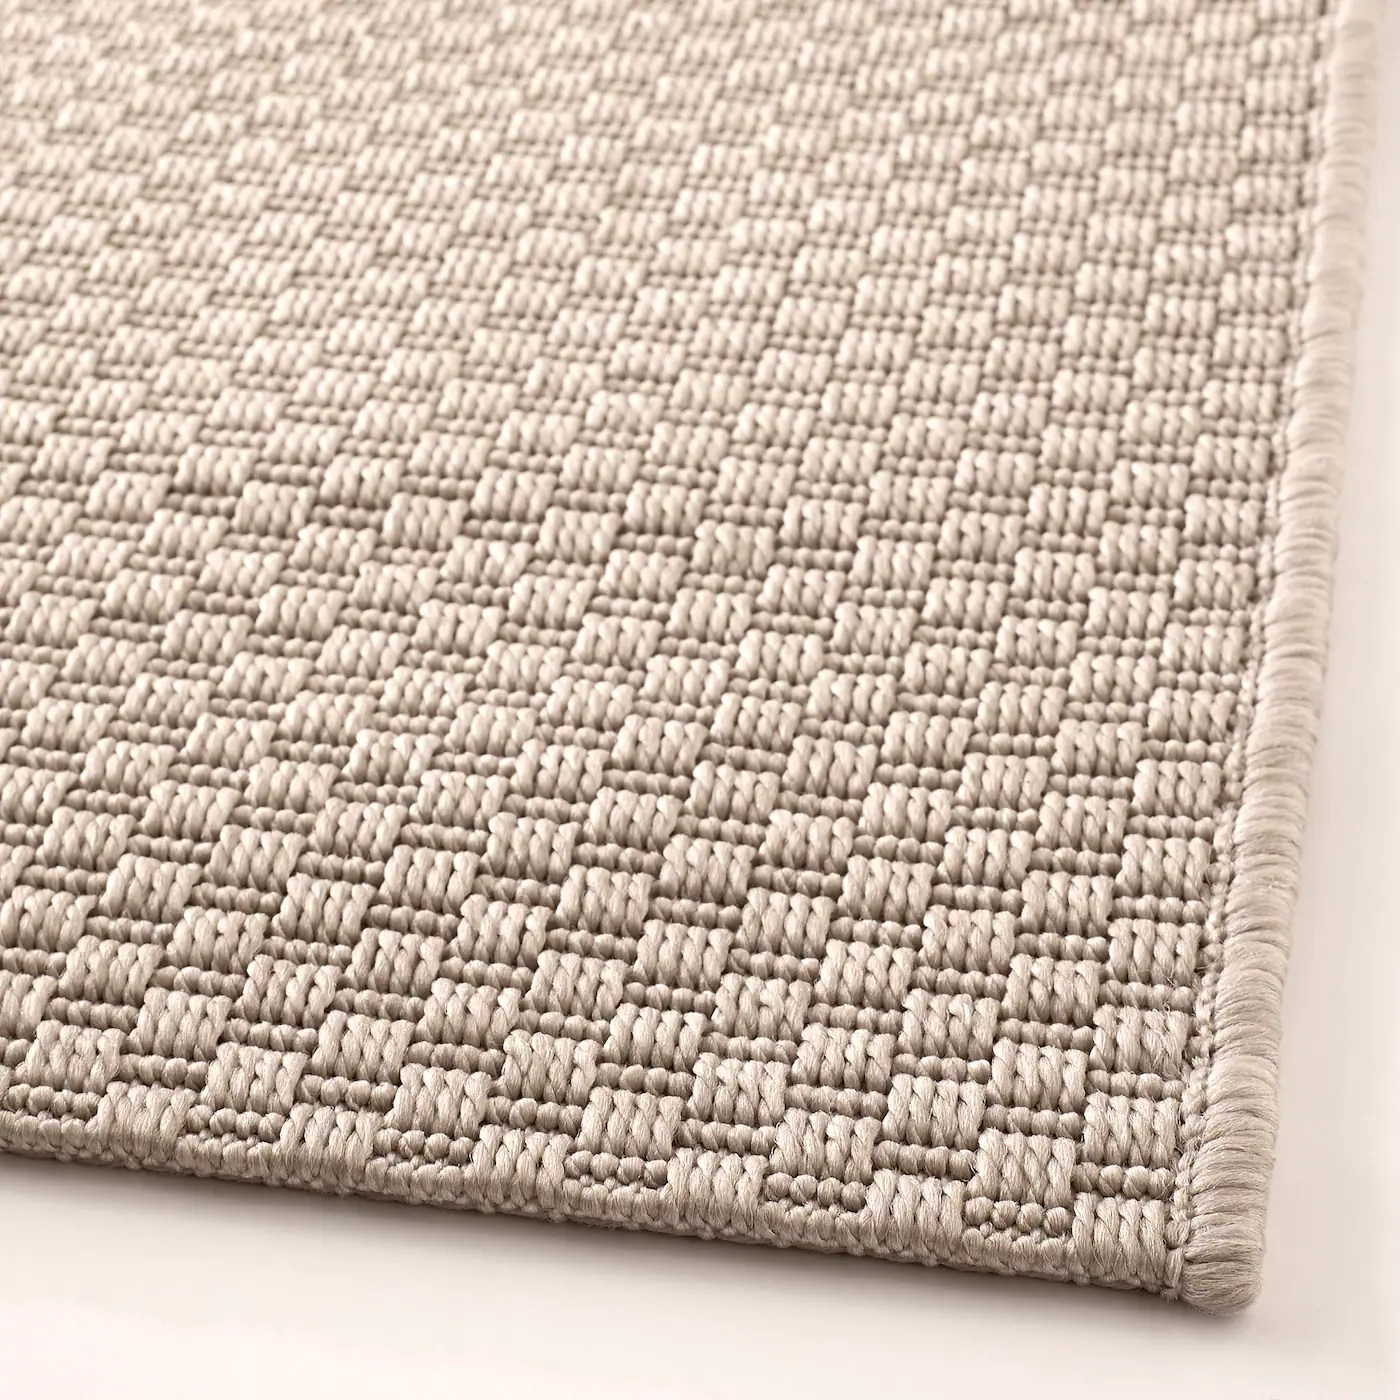 Morum Rug Flatwoven In Outdoor Beige 160x230 Cm Ikea - Outdoor Teppich Baby